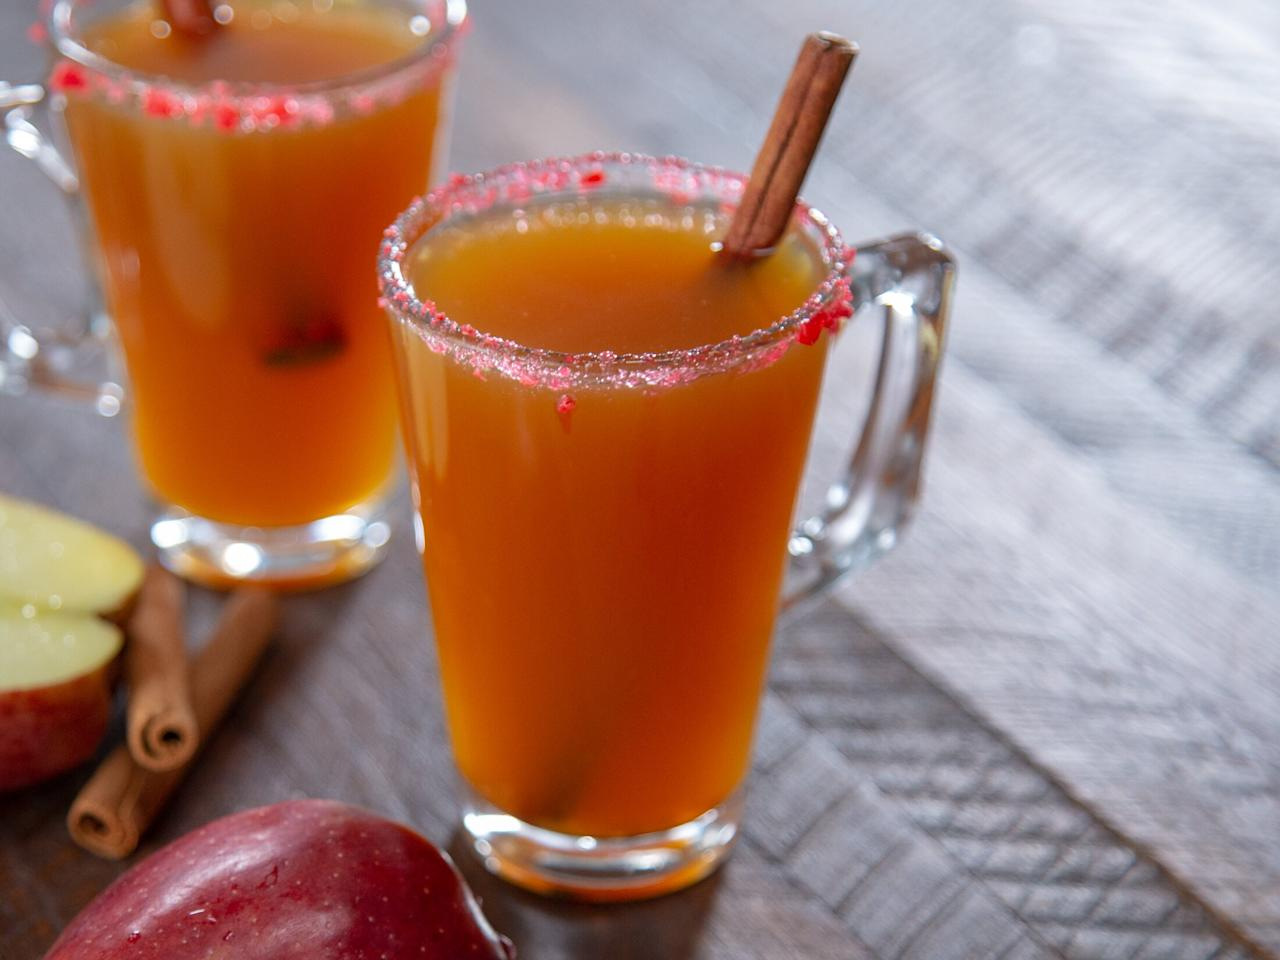 """<p>Mulled cider and cinnamon whiskey unite to create a perfect winter sipper. The Fireball flavor may be subtle here, but there's no doubt this cider is spiked. We prefer using refrigerated cider to shelf-stable cider. Depending on your preferred brand of cider, you may choose to omit the added sugar during the mulling step. This recipe makes 12 servings, but you don't have to serve it all at once. You can mull the cider, serve what you want, and save the remainder in the fridge.</p> <p><a href=""""https://www.myrecipes.com/recipe/cinnamon-hot-toddy"""">Cinnamon Hot Toddy Recipe</a></p>"""